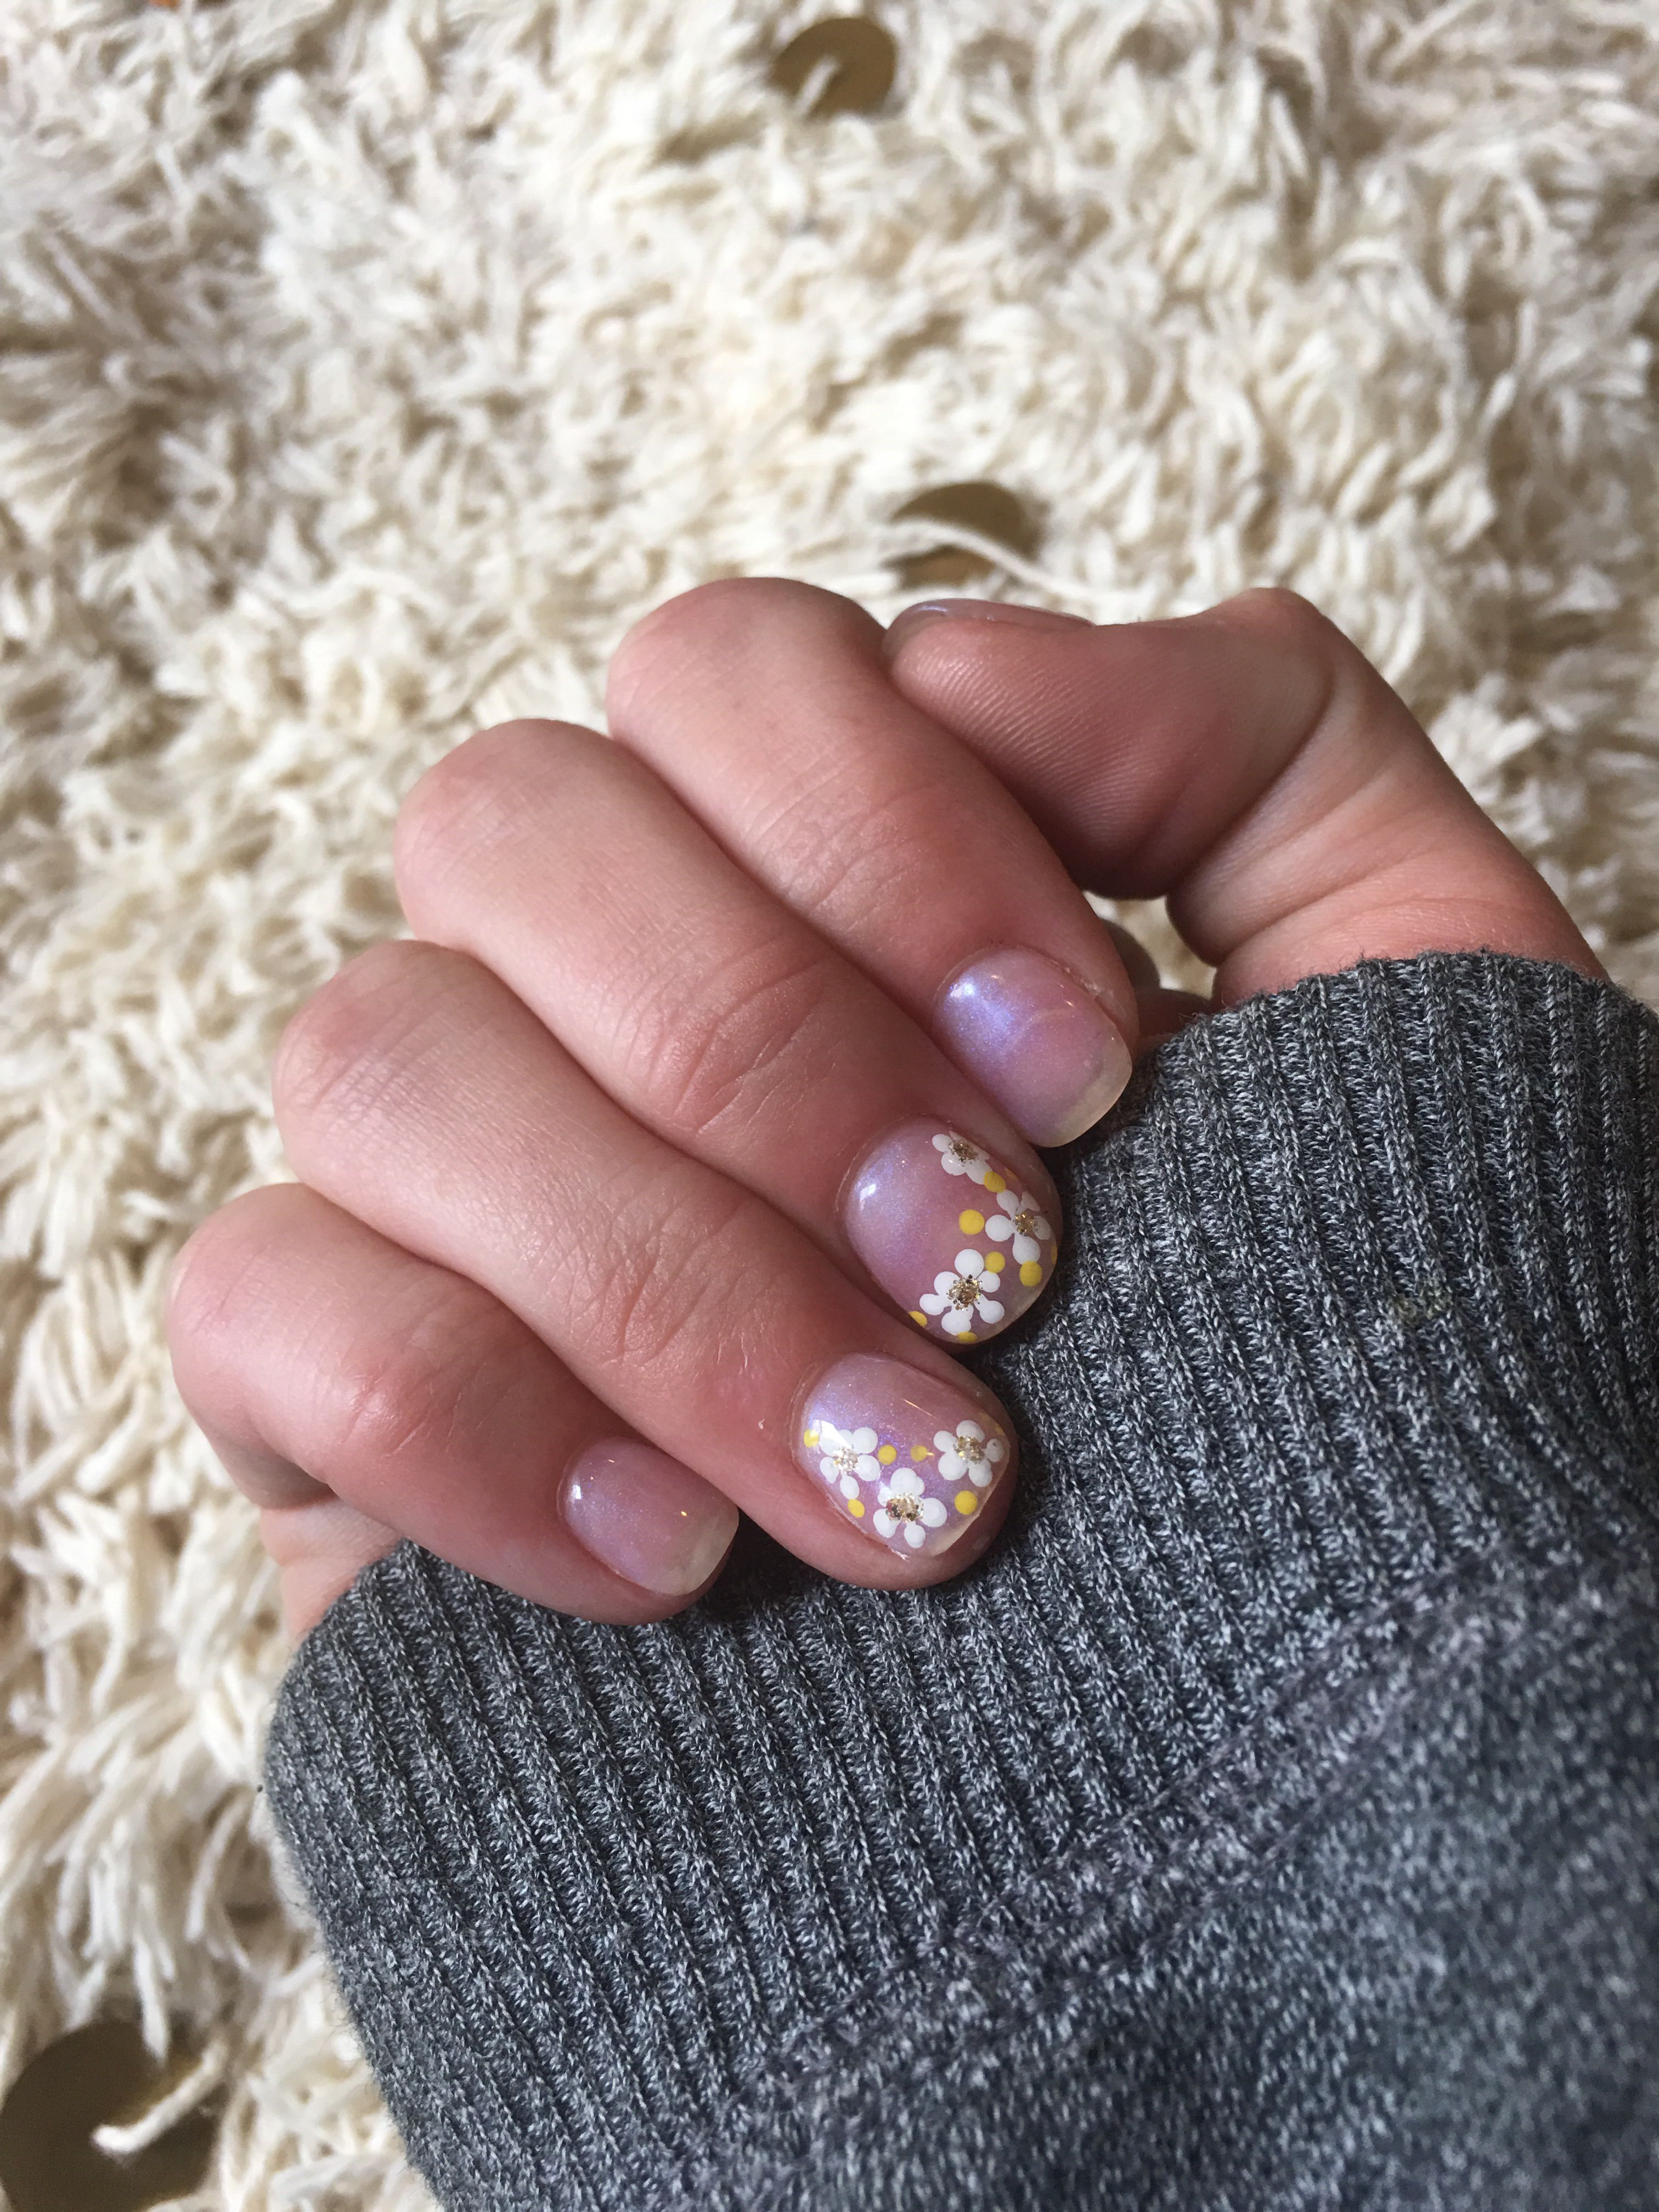 Short Natural Nails Super Simple And Sophisticated Marble Gel Nail Polish And Small Daisy S Pink Manicure Gel Nails Short Nail Designs